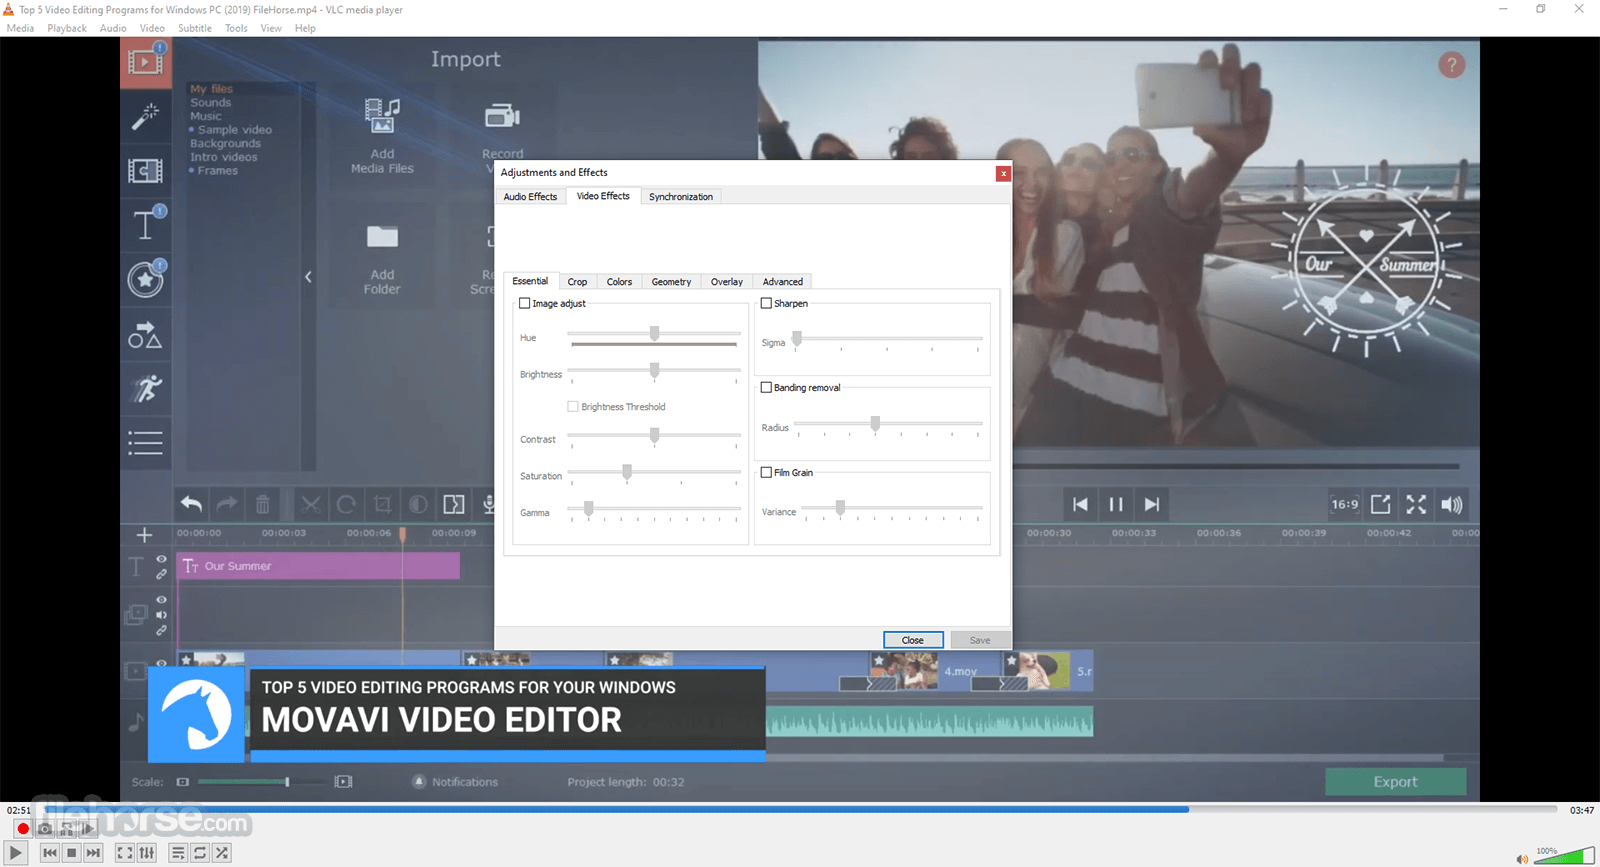 VLC Media Player 2.2.6 (32-bit) Screenshot 4